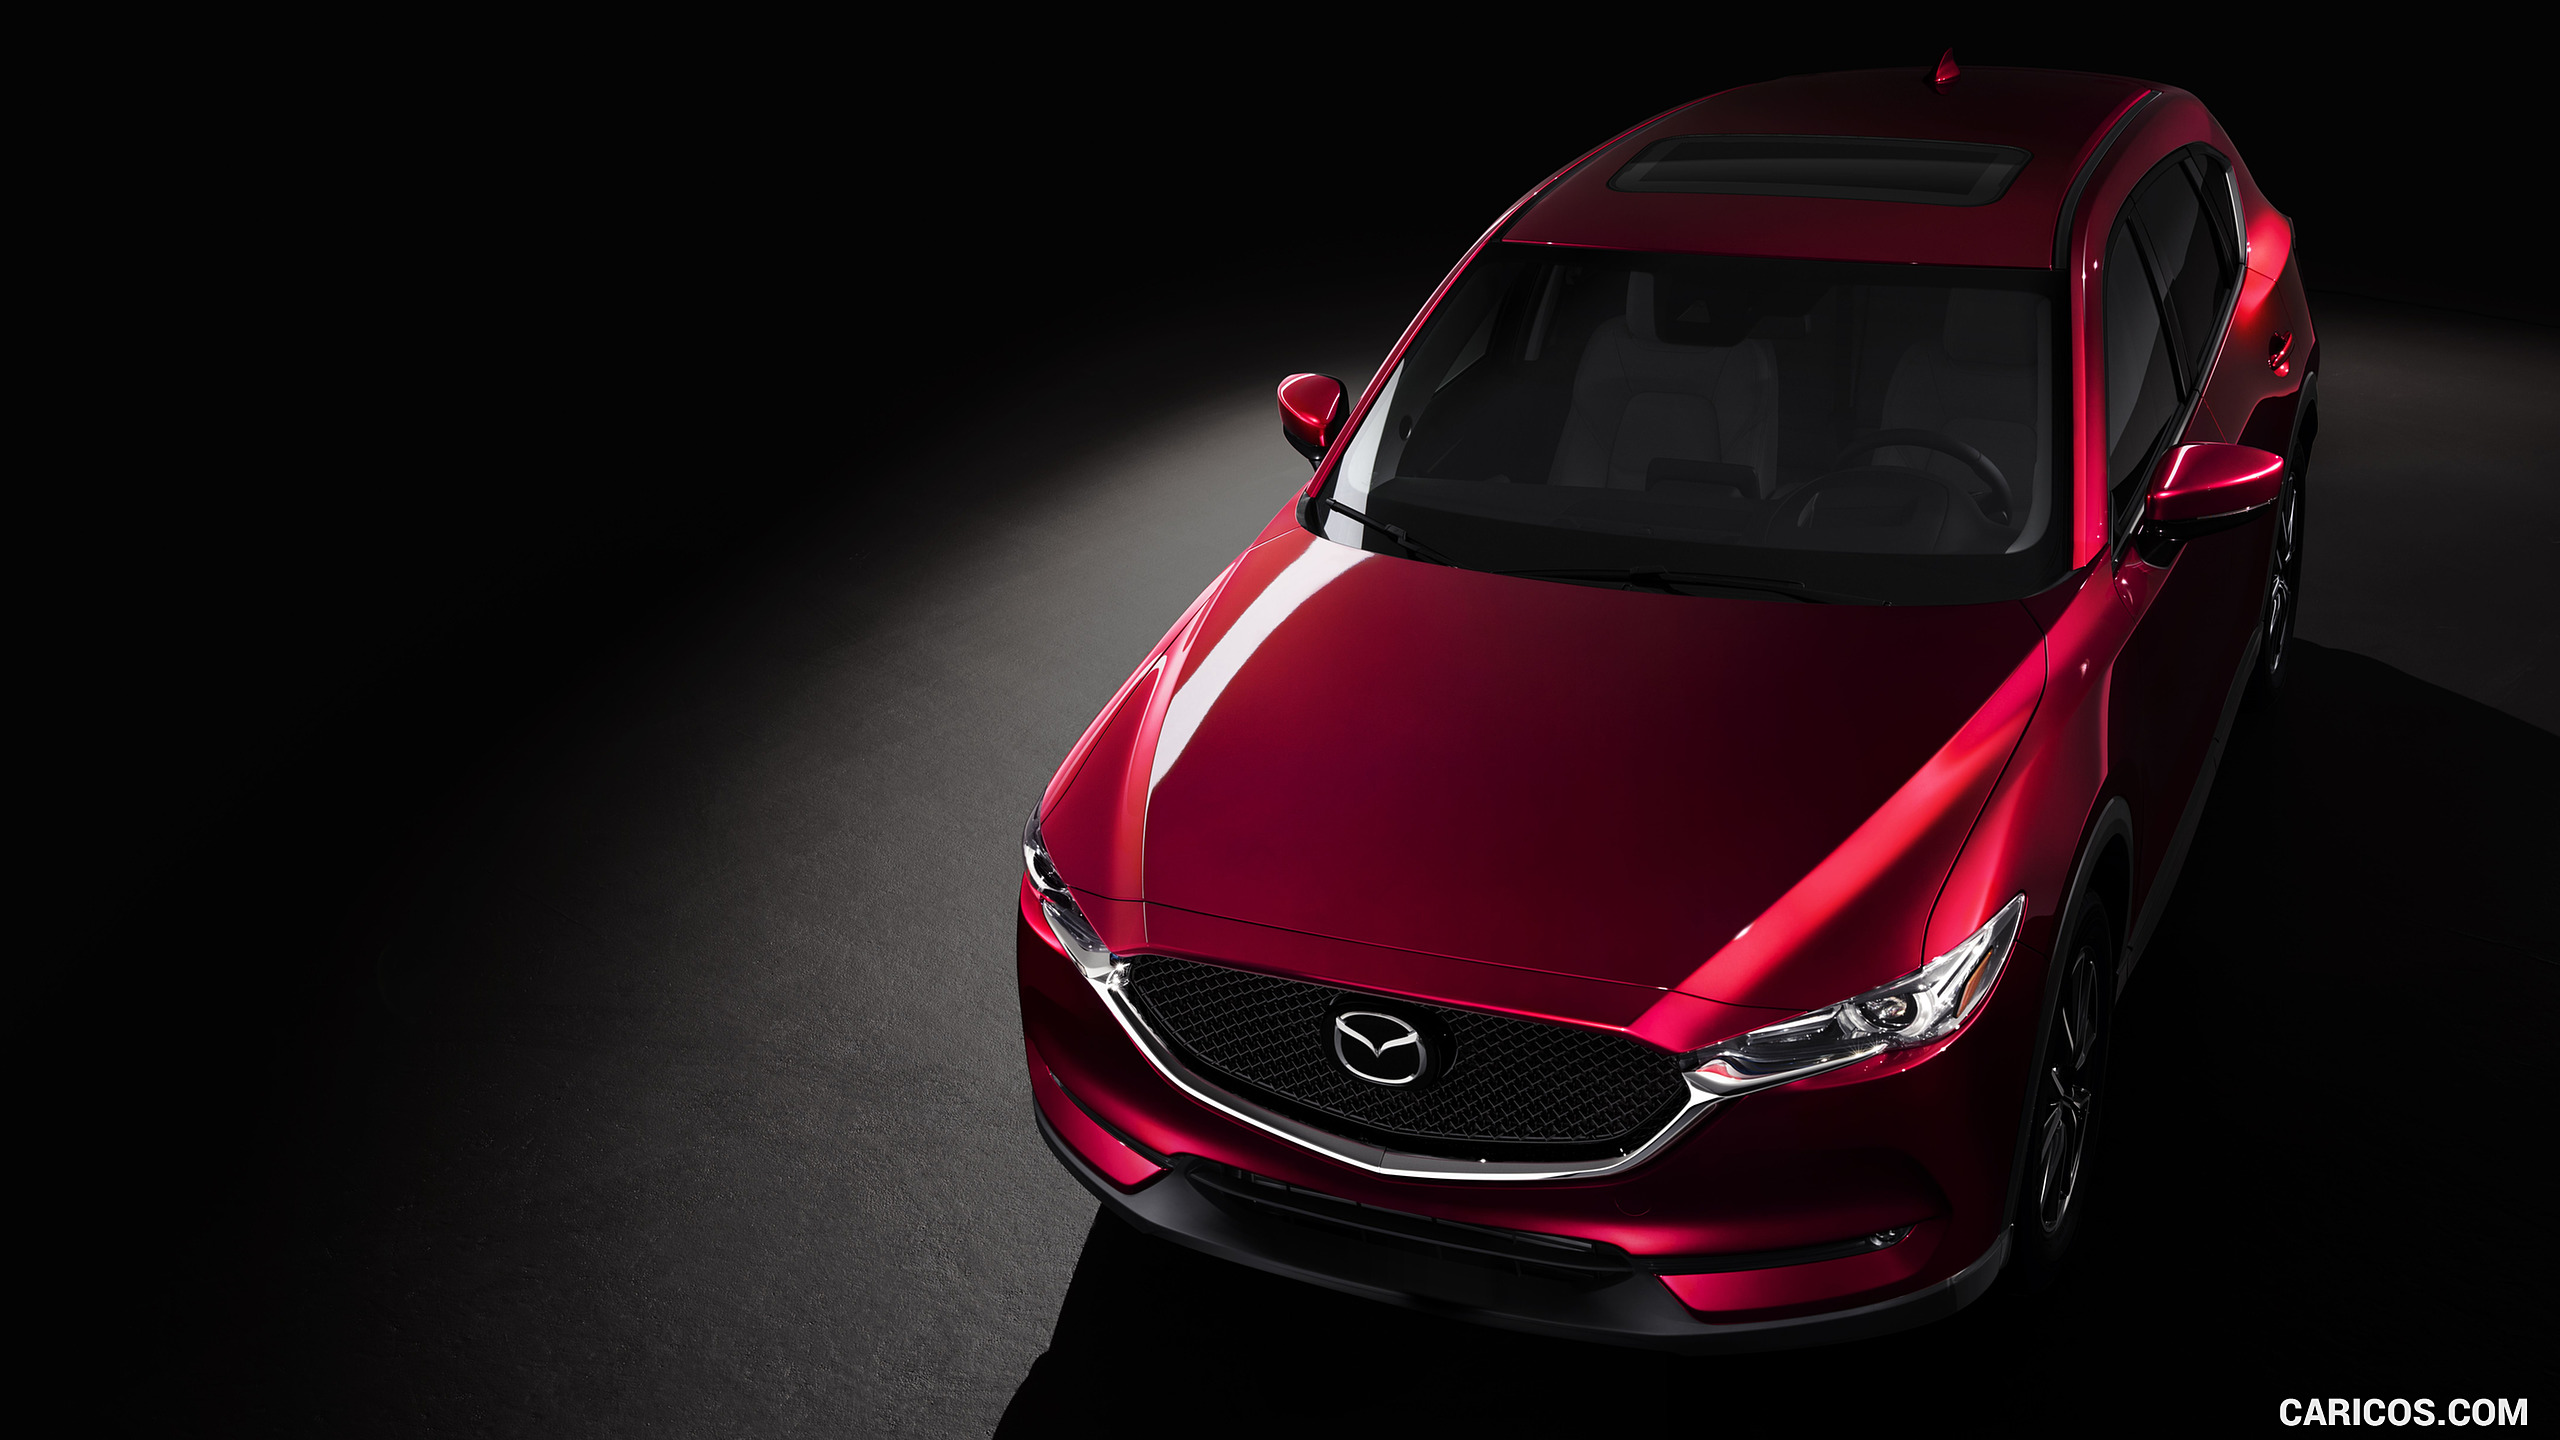 2560x1440 - Mazda CX-5 Wallpapers 8